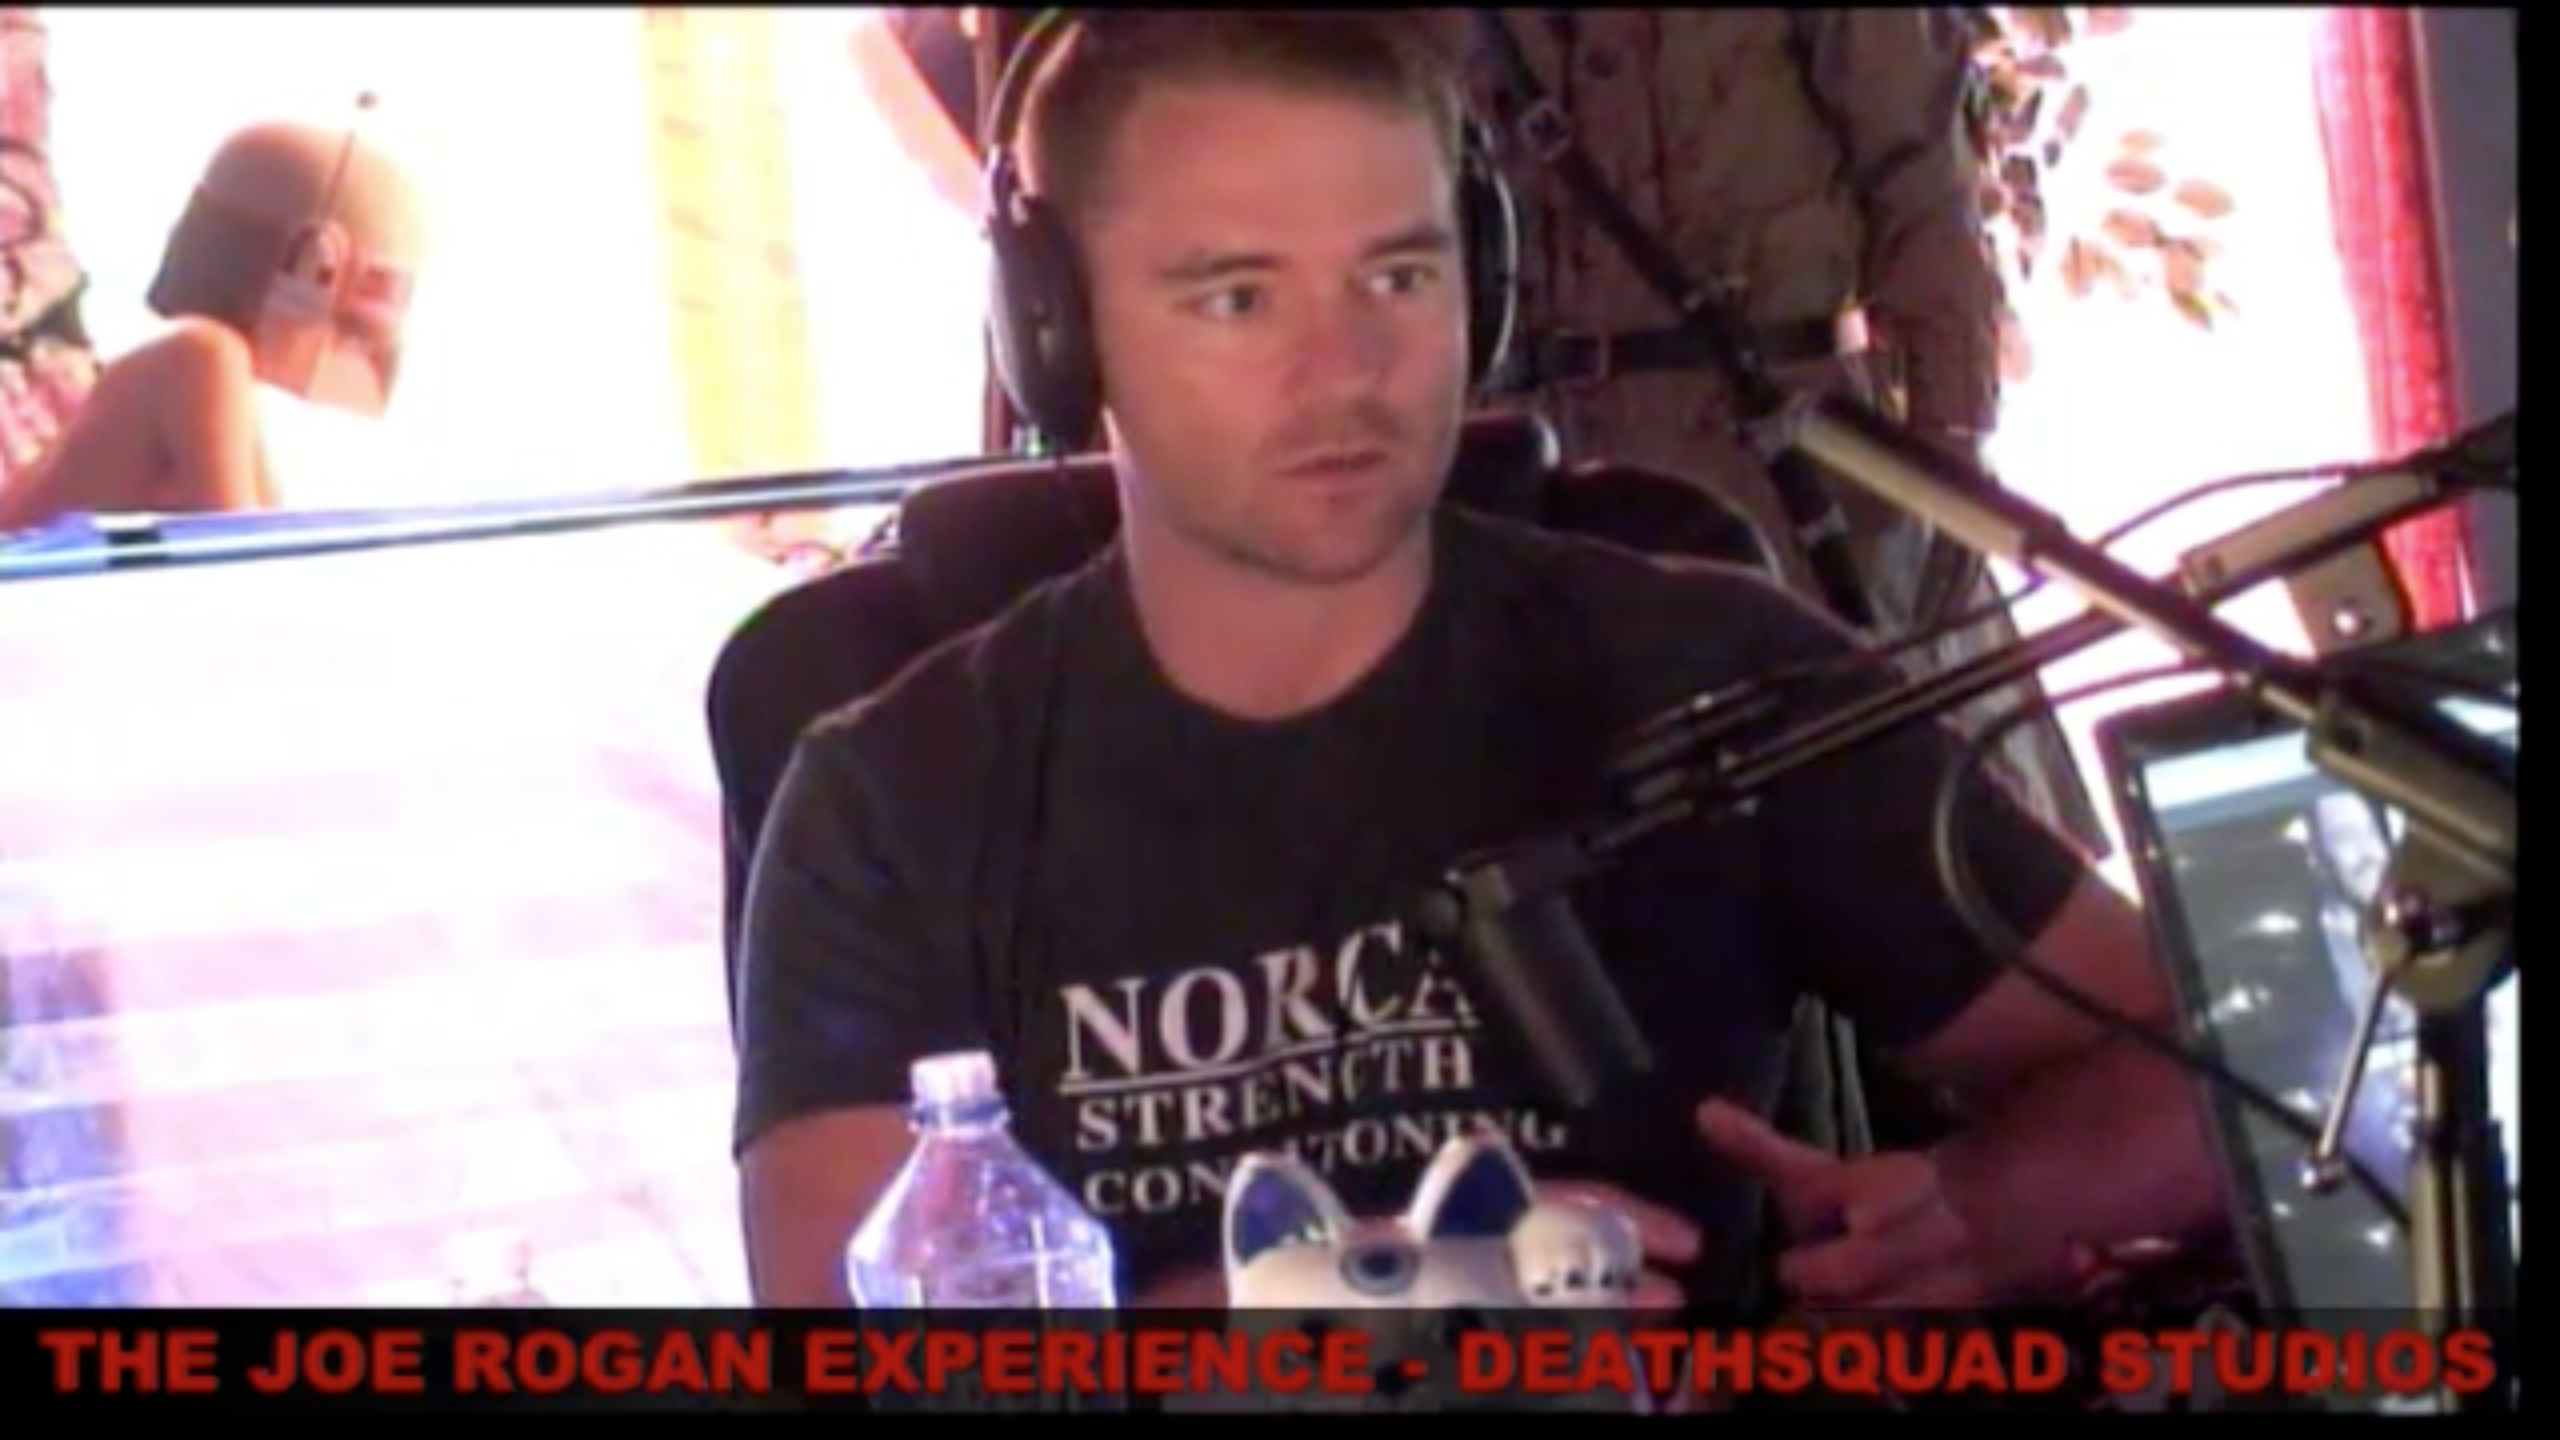 The Joe Rogan Experience #245 - Robb Wolf, Brian Redban